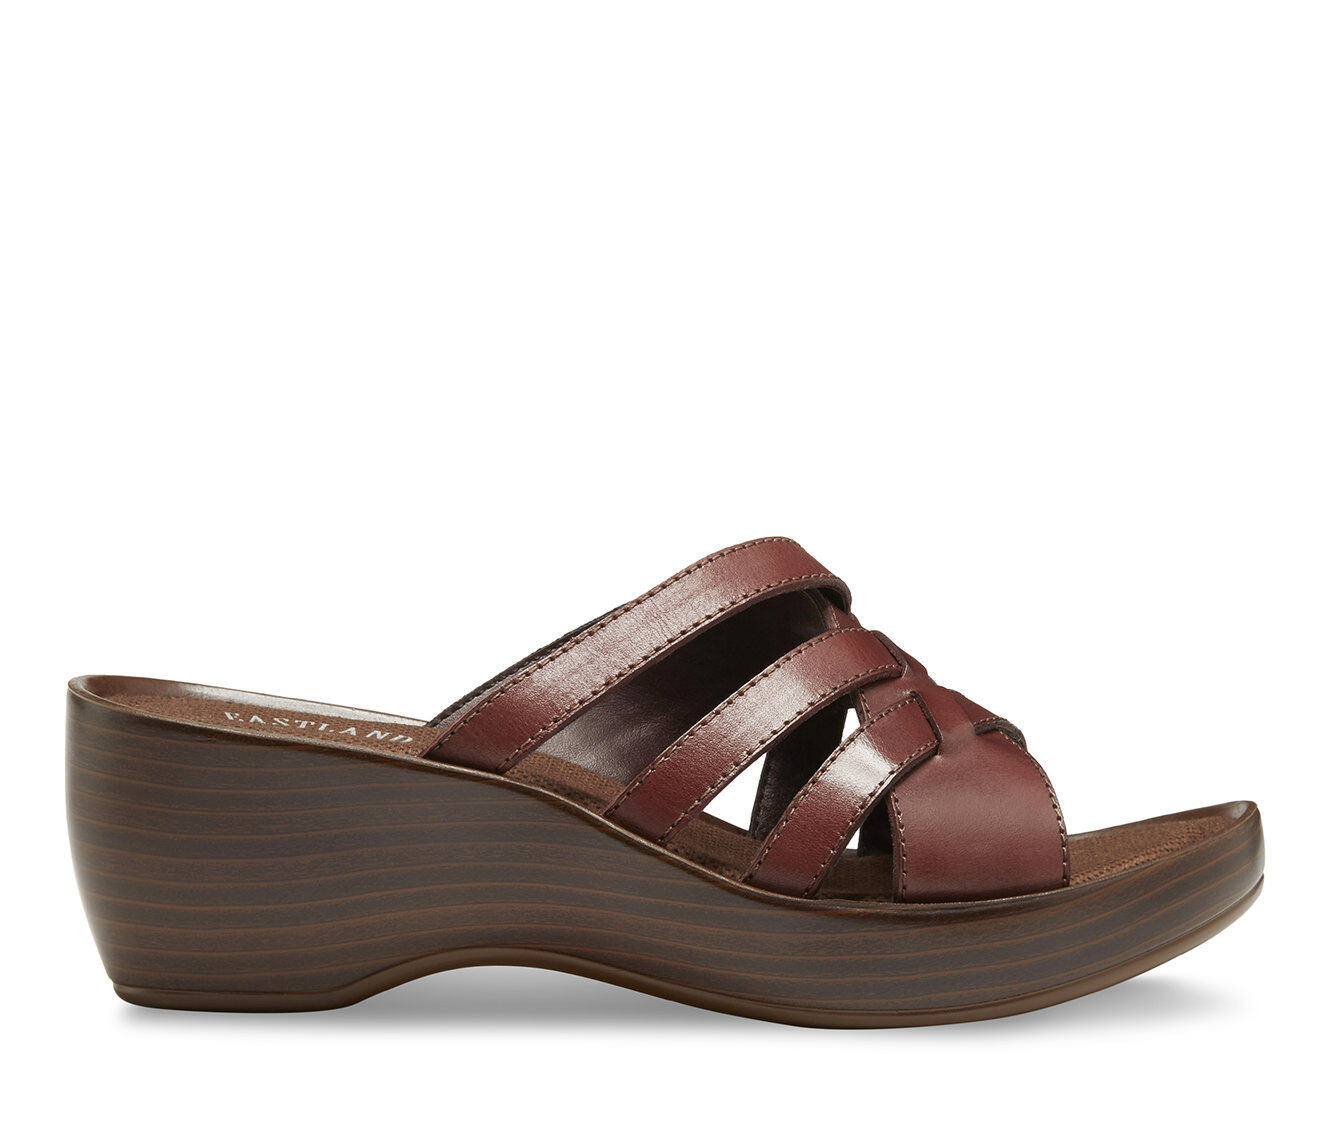 Women's Eastland Poppy Sandals Cinnamon